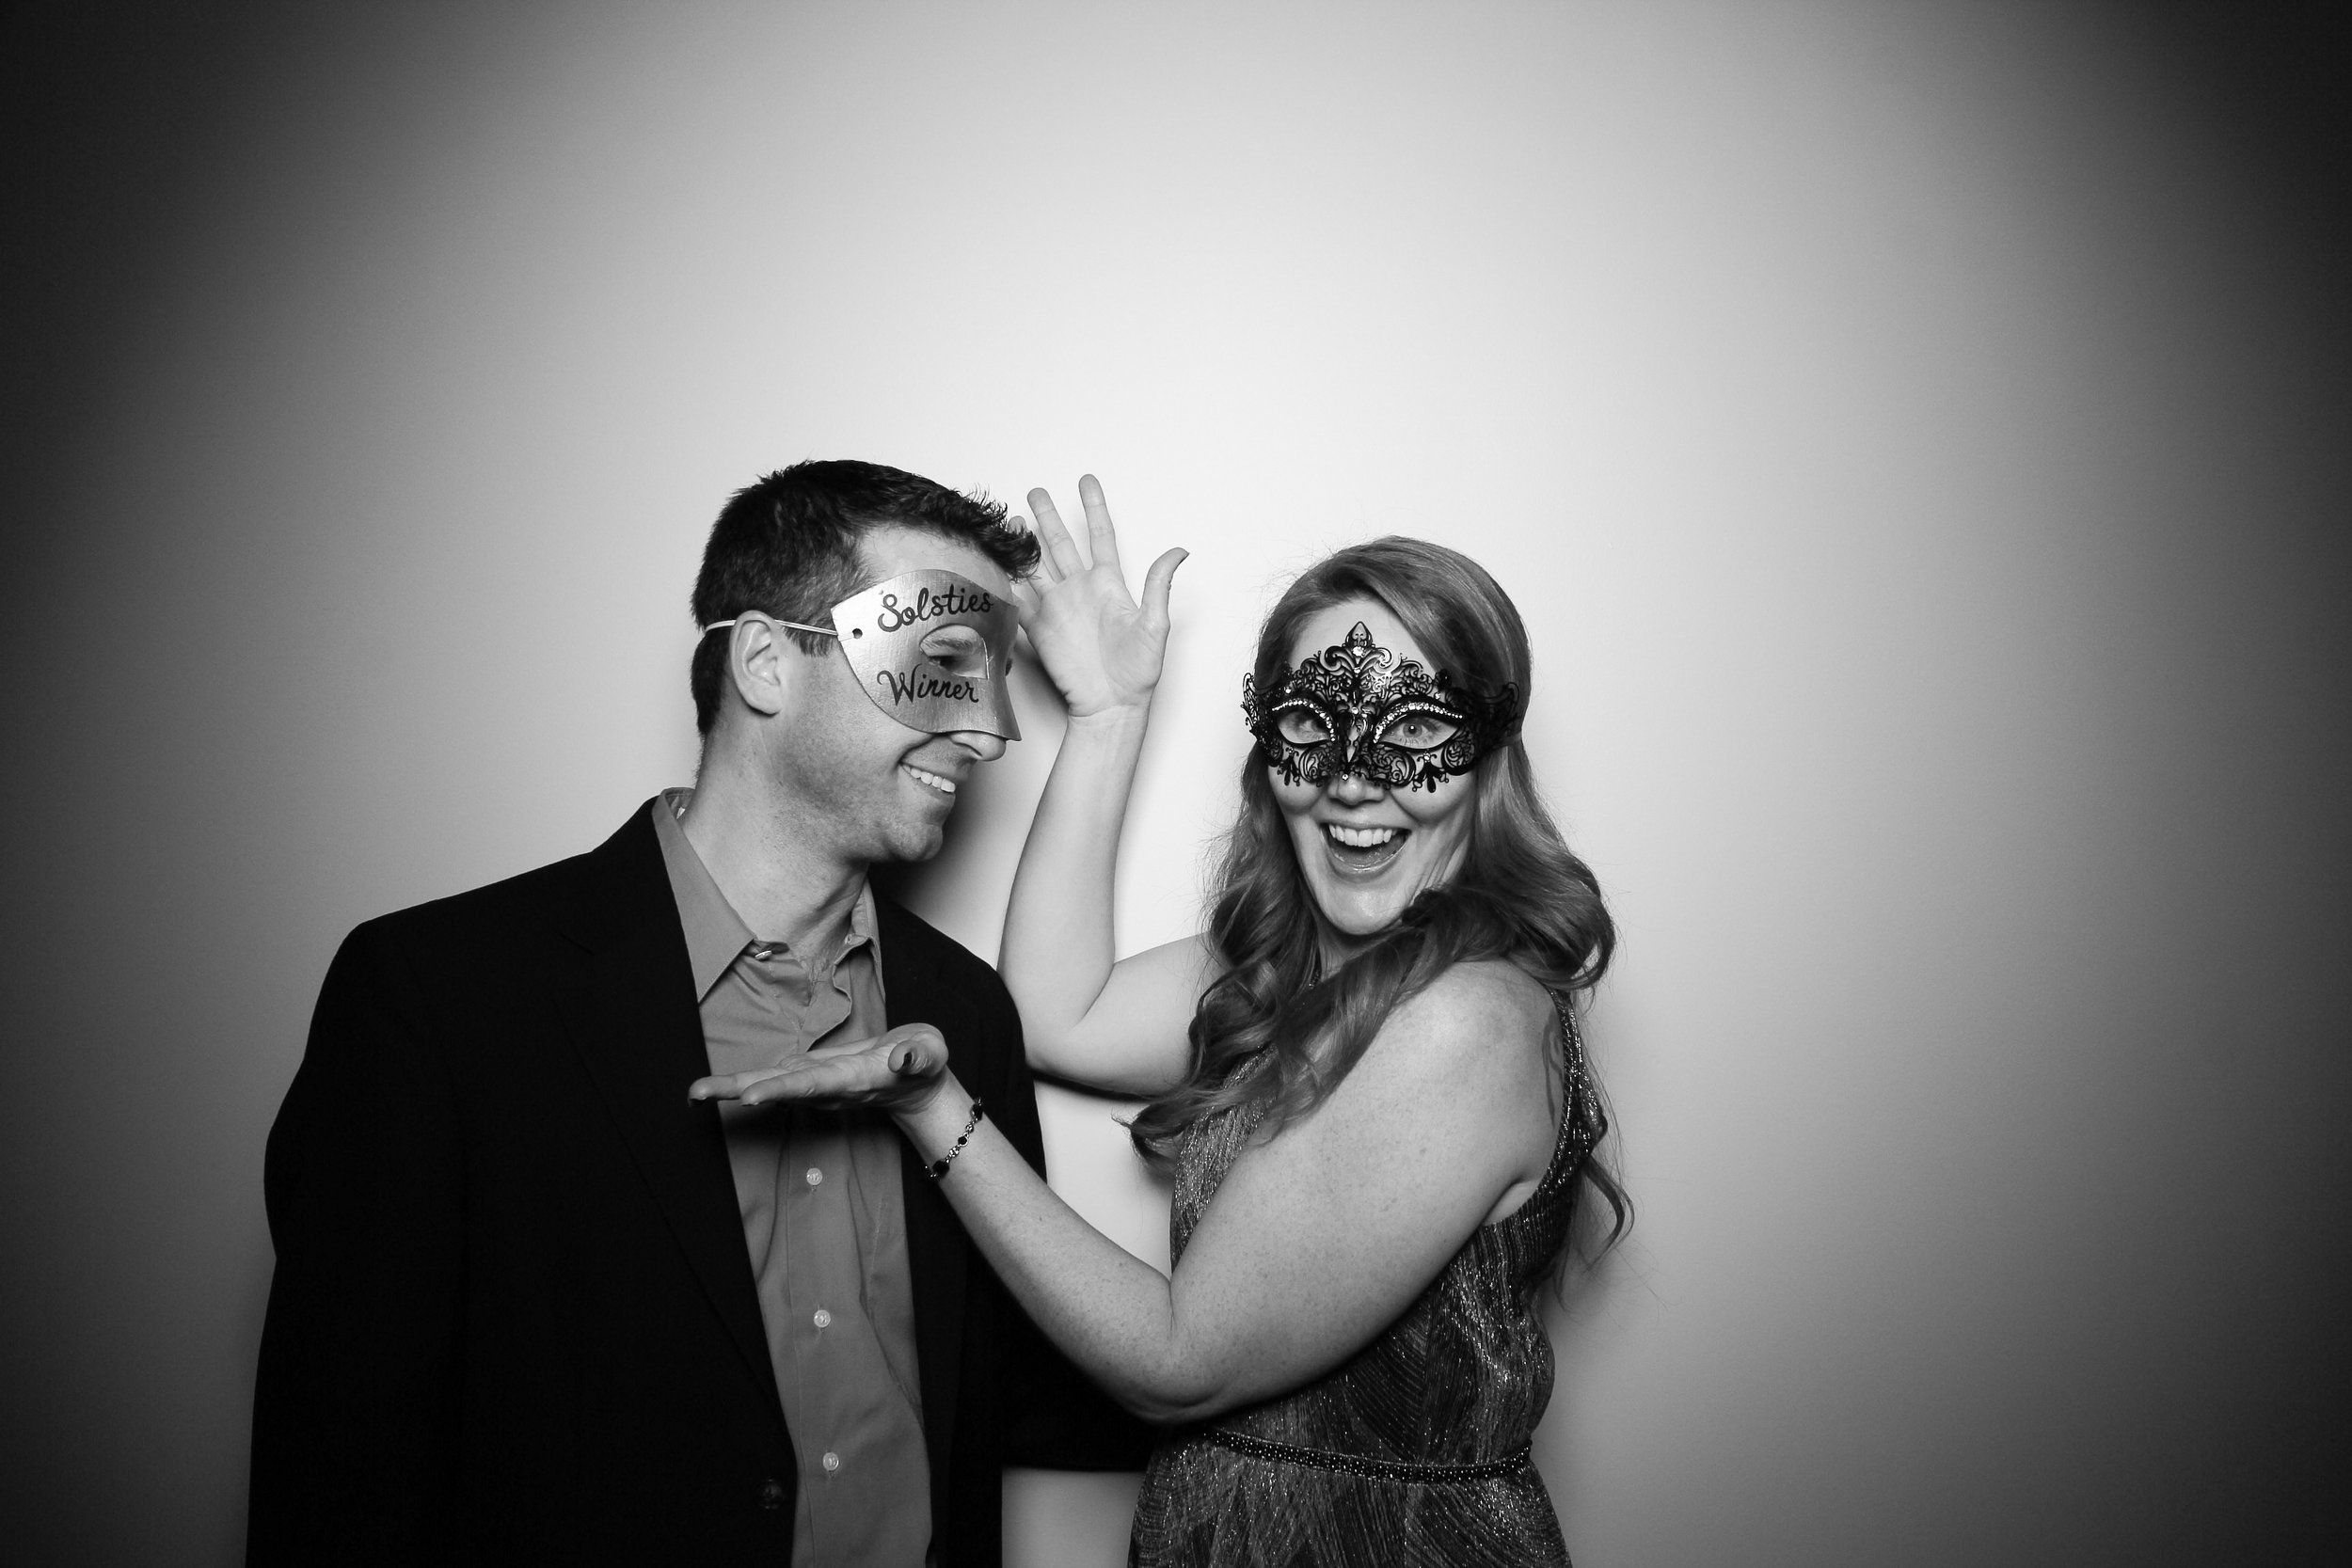 Chicago_Vintage_Photobooth_Solstice_Company_Holiday_Party_09.jpg